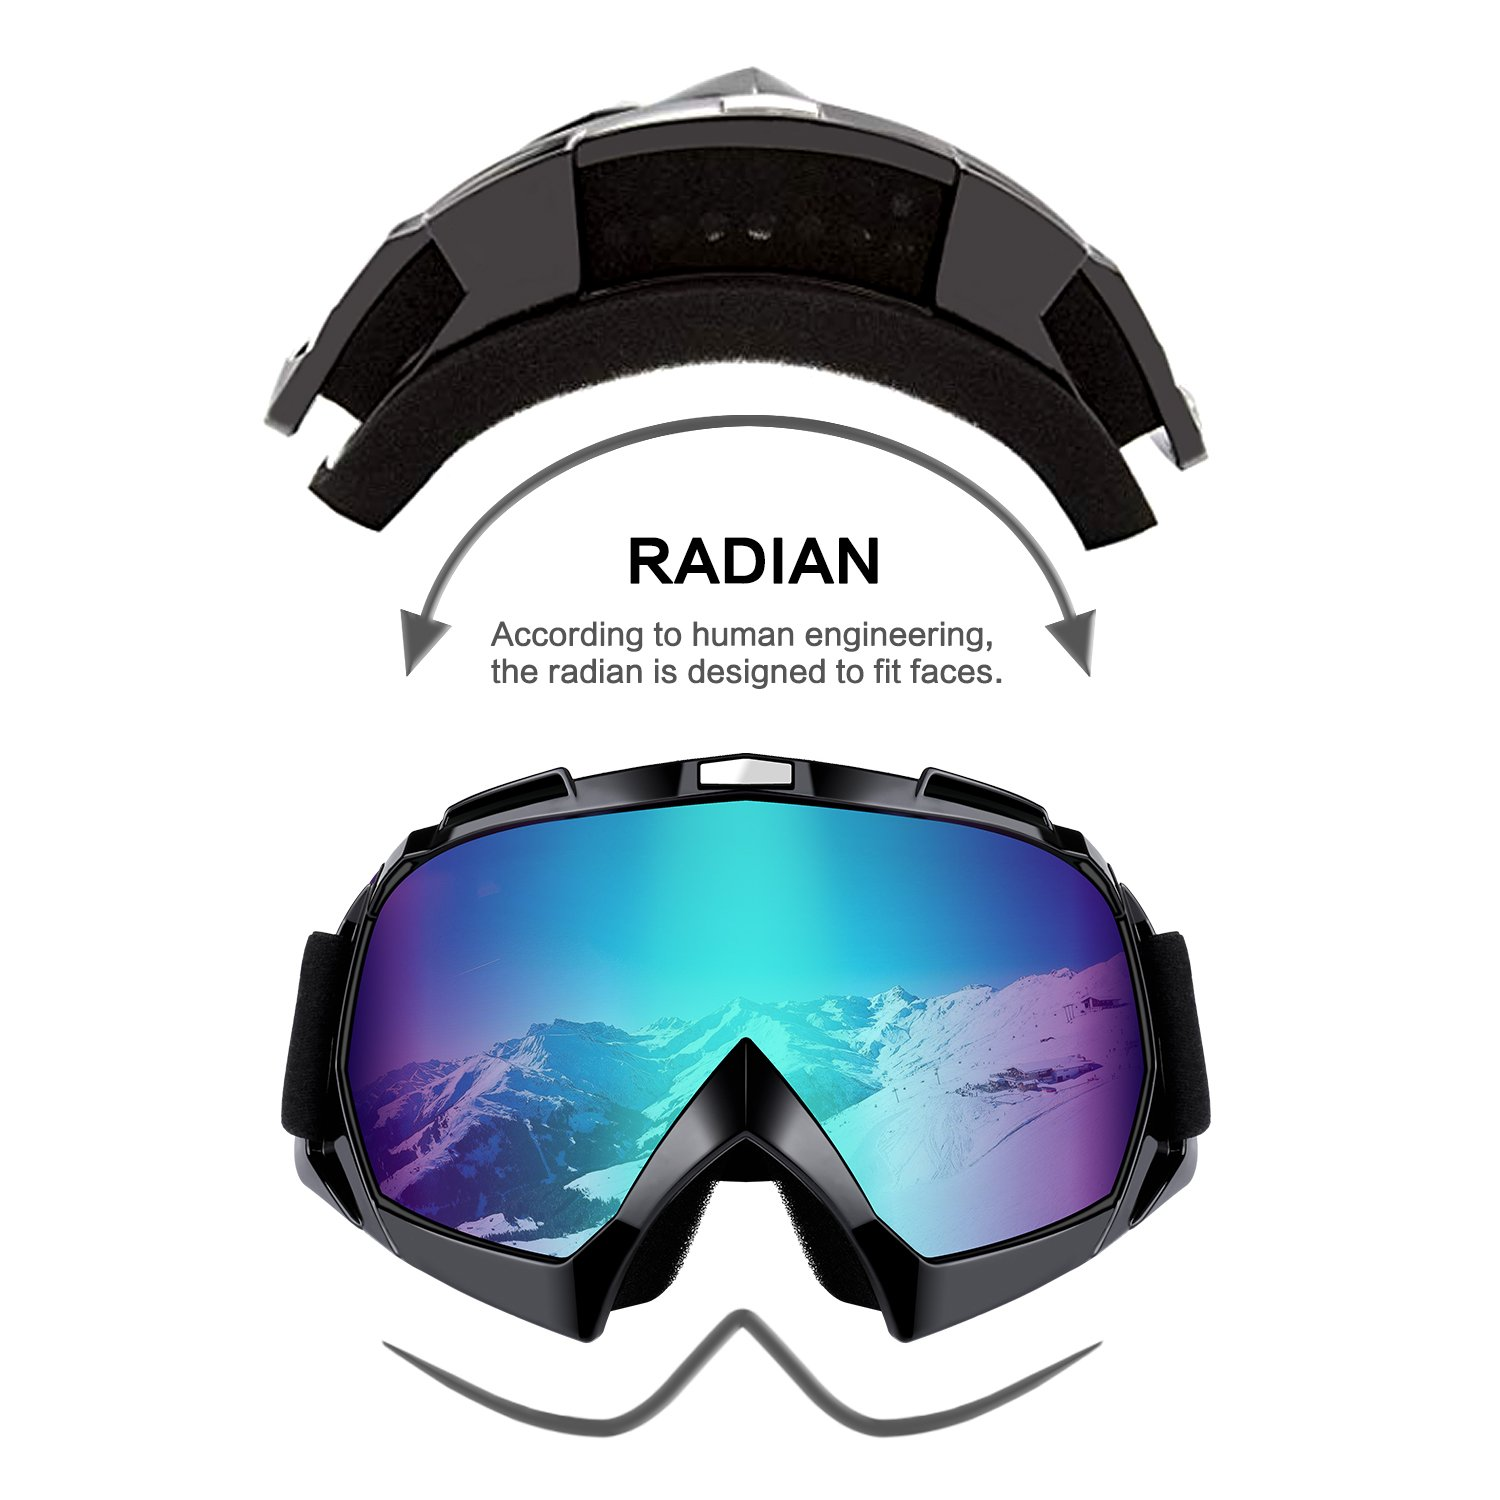 Motorcycle Motocross Goggles Cycling Windproof Dustproof UV400 Protection Clear Lense Ski Snowboard Sports Outdoor Goggles ATV Off Road Bike Glasses for Men Women /& Youth Dirt Bike Riding